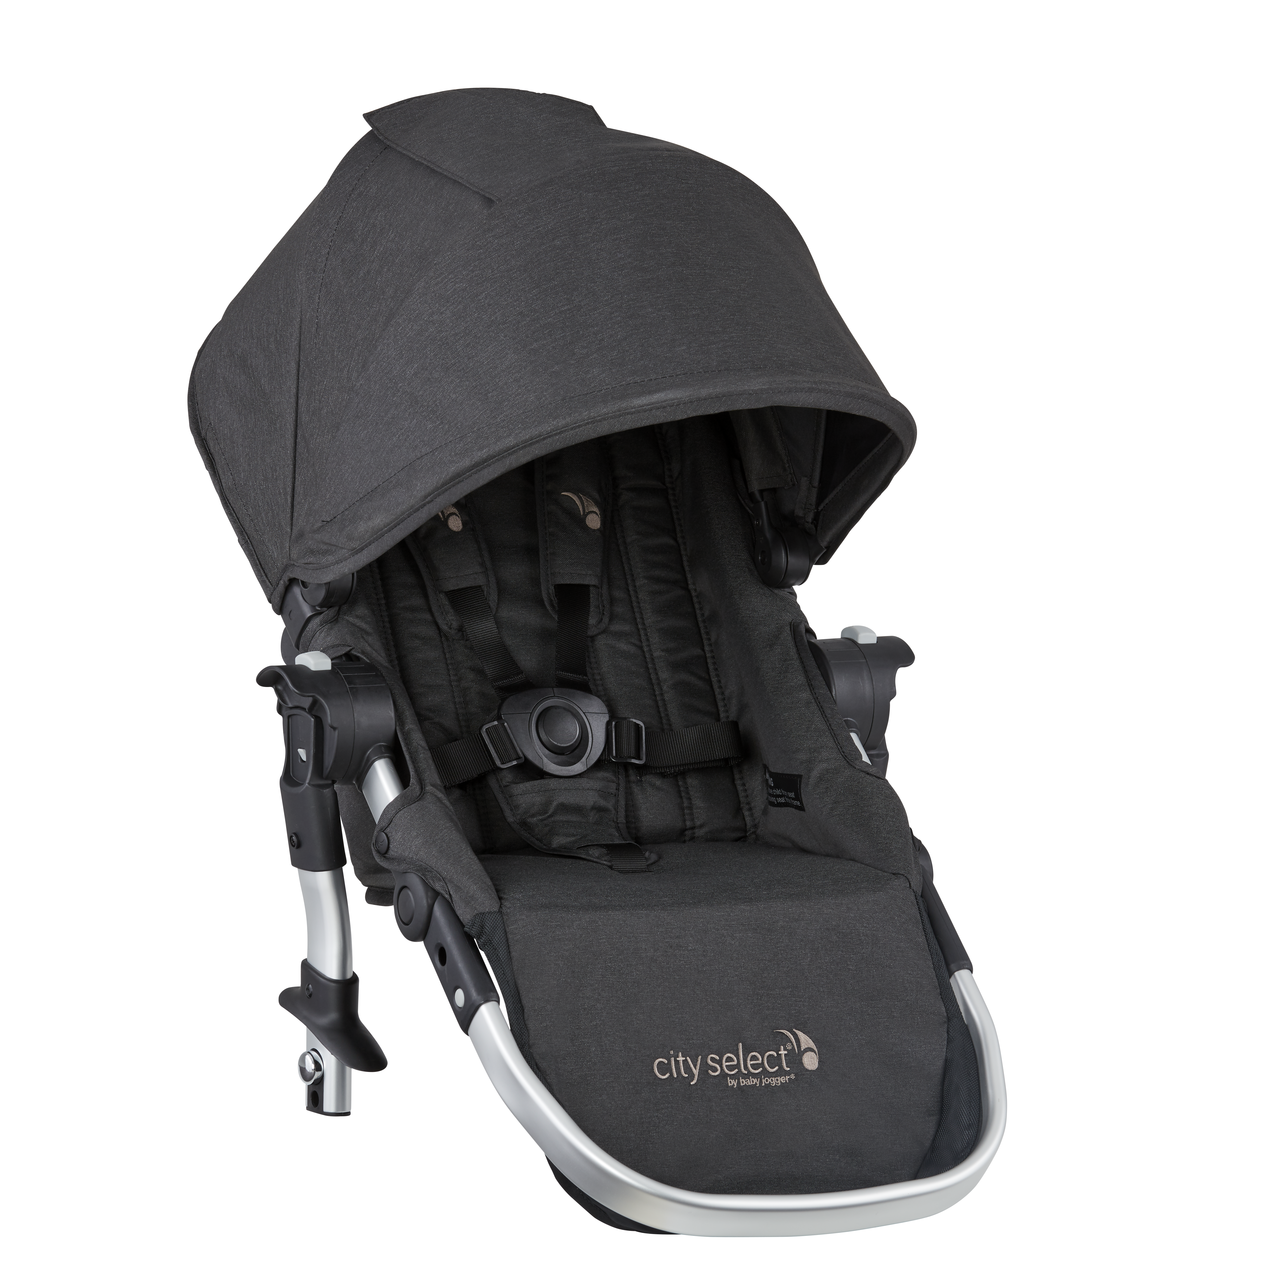 BabyJogger Baby Jogger City Select 2019 2nd Seat